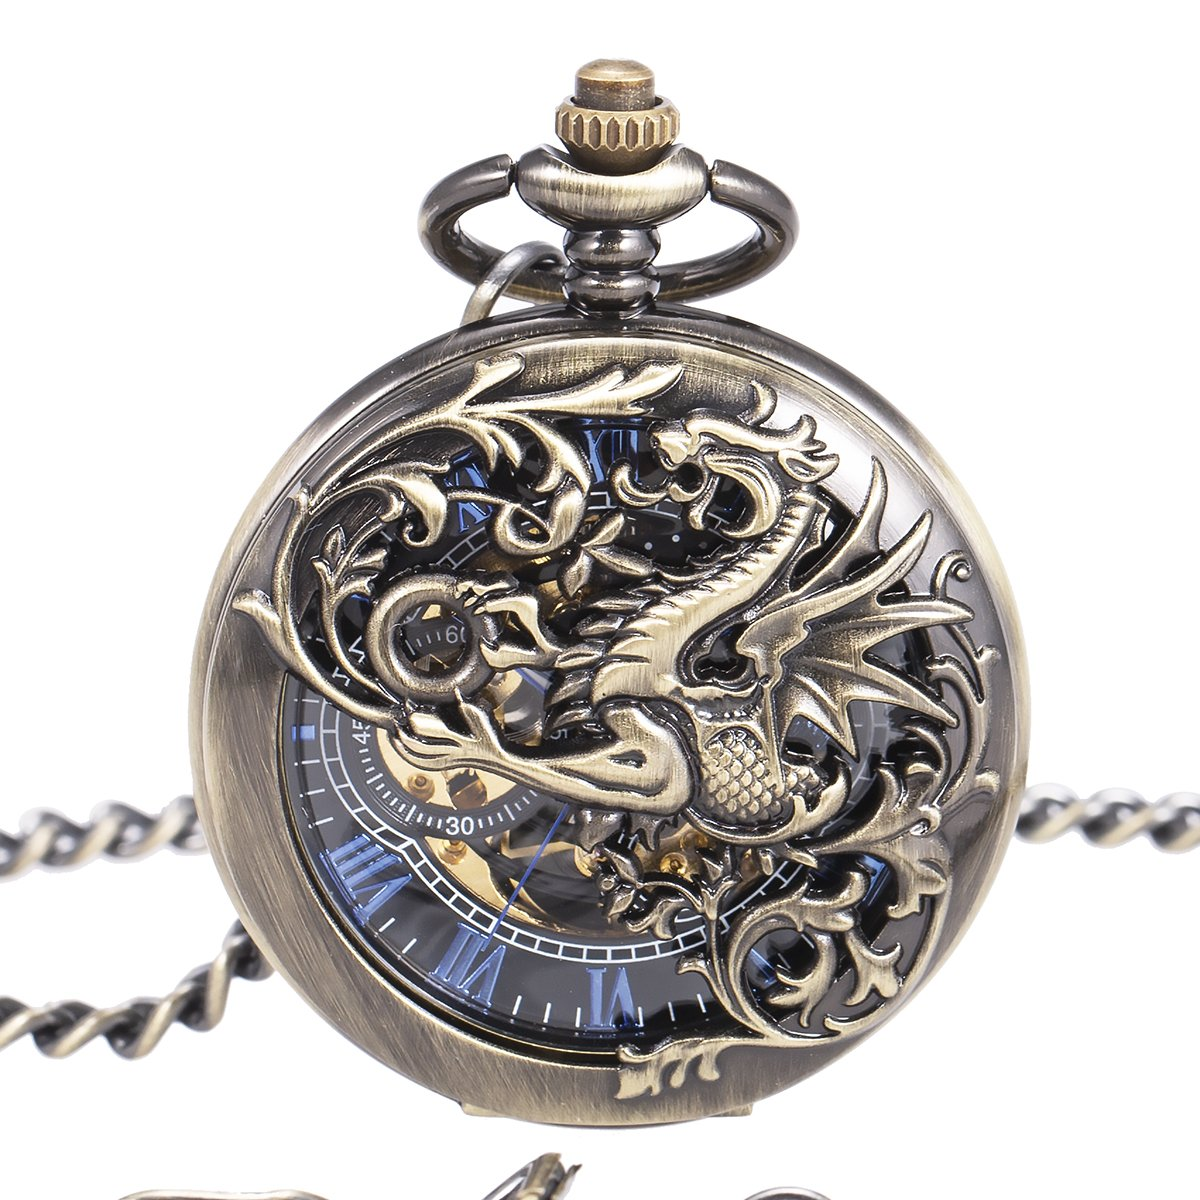 Mens Antique Brone Dragon Skeleton Mechanical Pocket Watch with Chain -Double Copper Dream Dragon Hollow Double Hunter ManChDa Blue Roman Numerals Black Dial (3.Bronze Dragon Hollow Double Hunter)